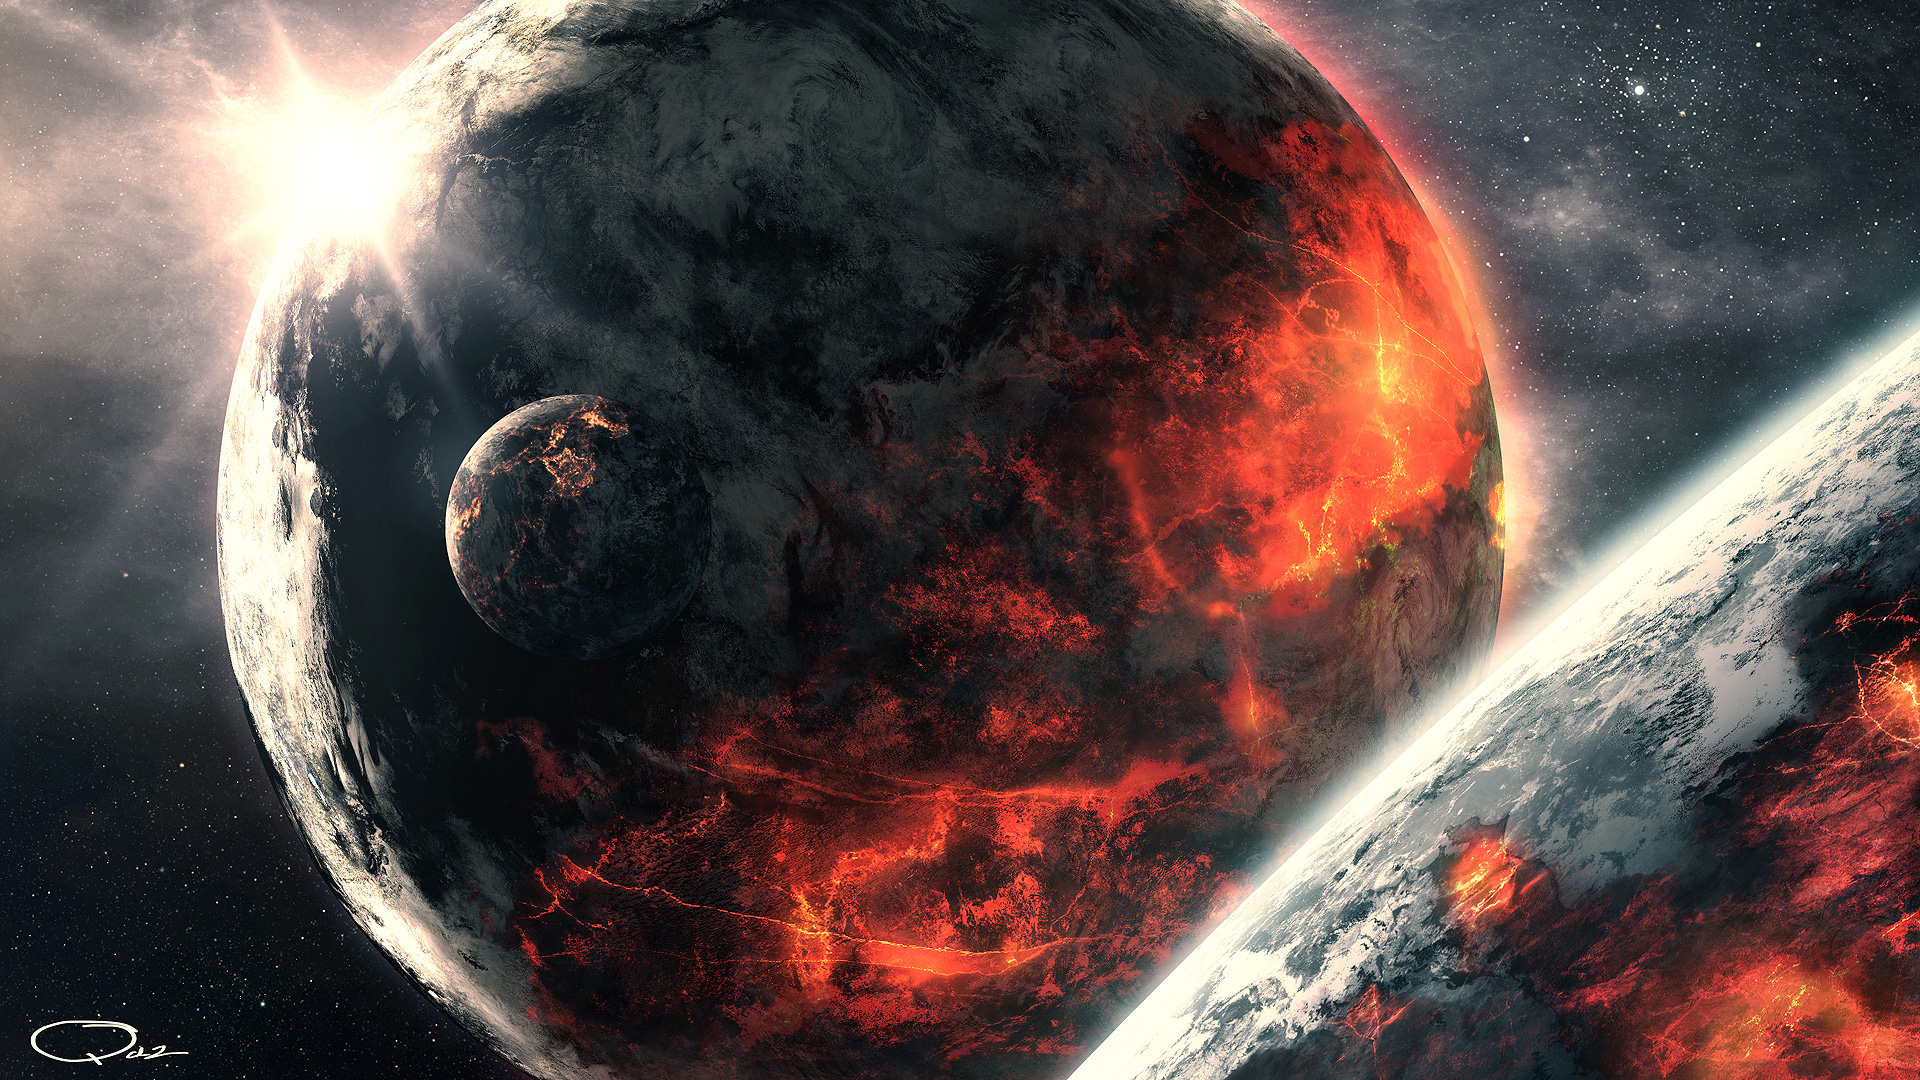 space 1080p wallpaper full hd volcanic planet in space 1920x1080